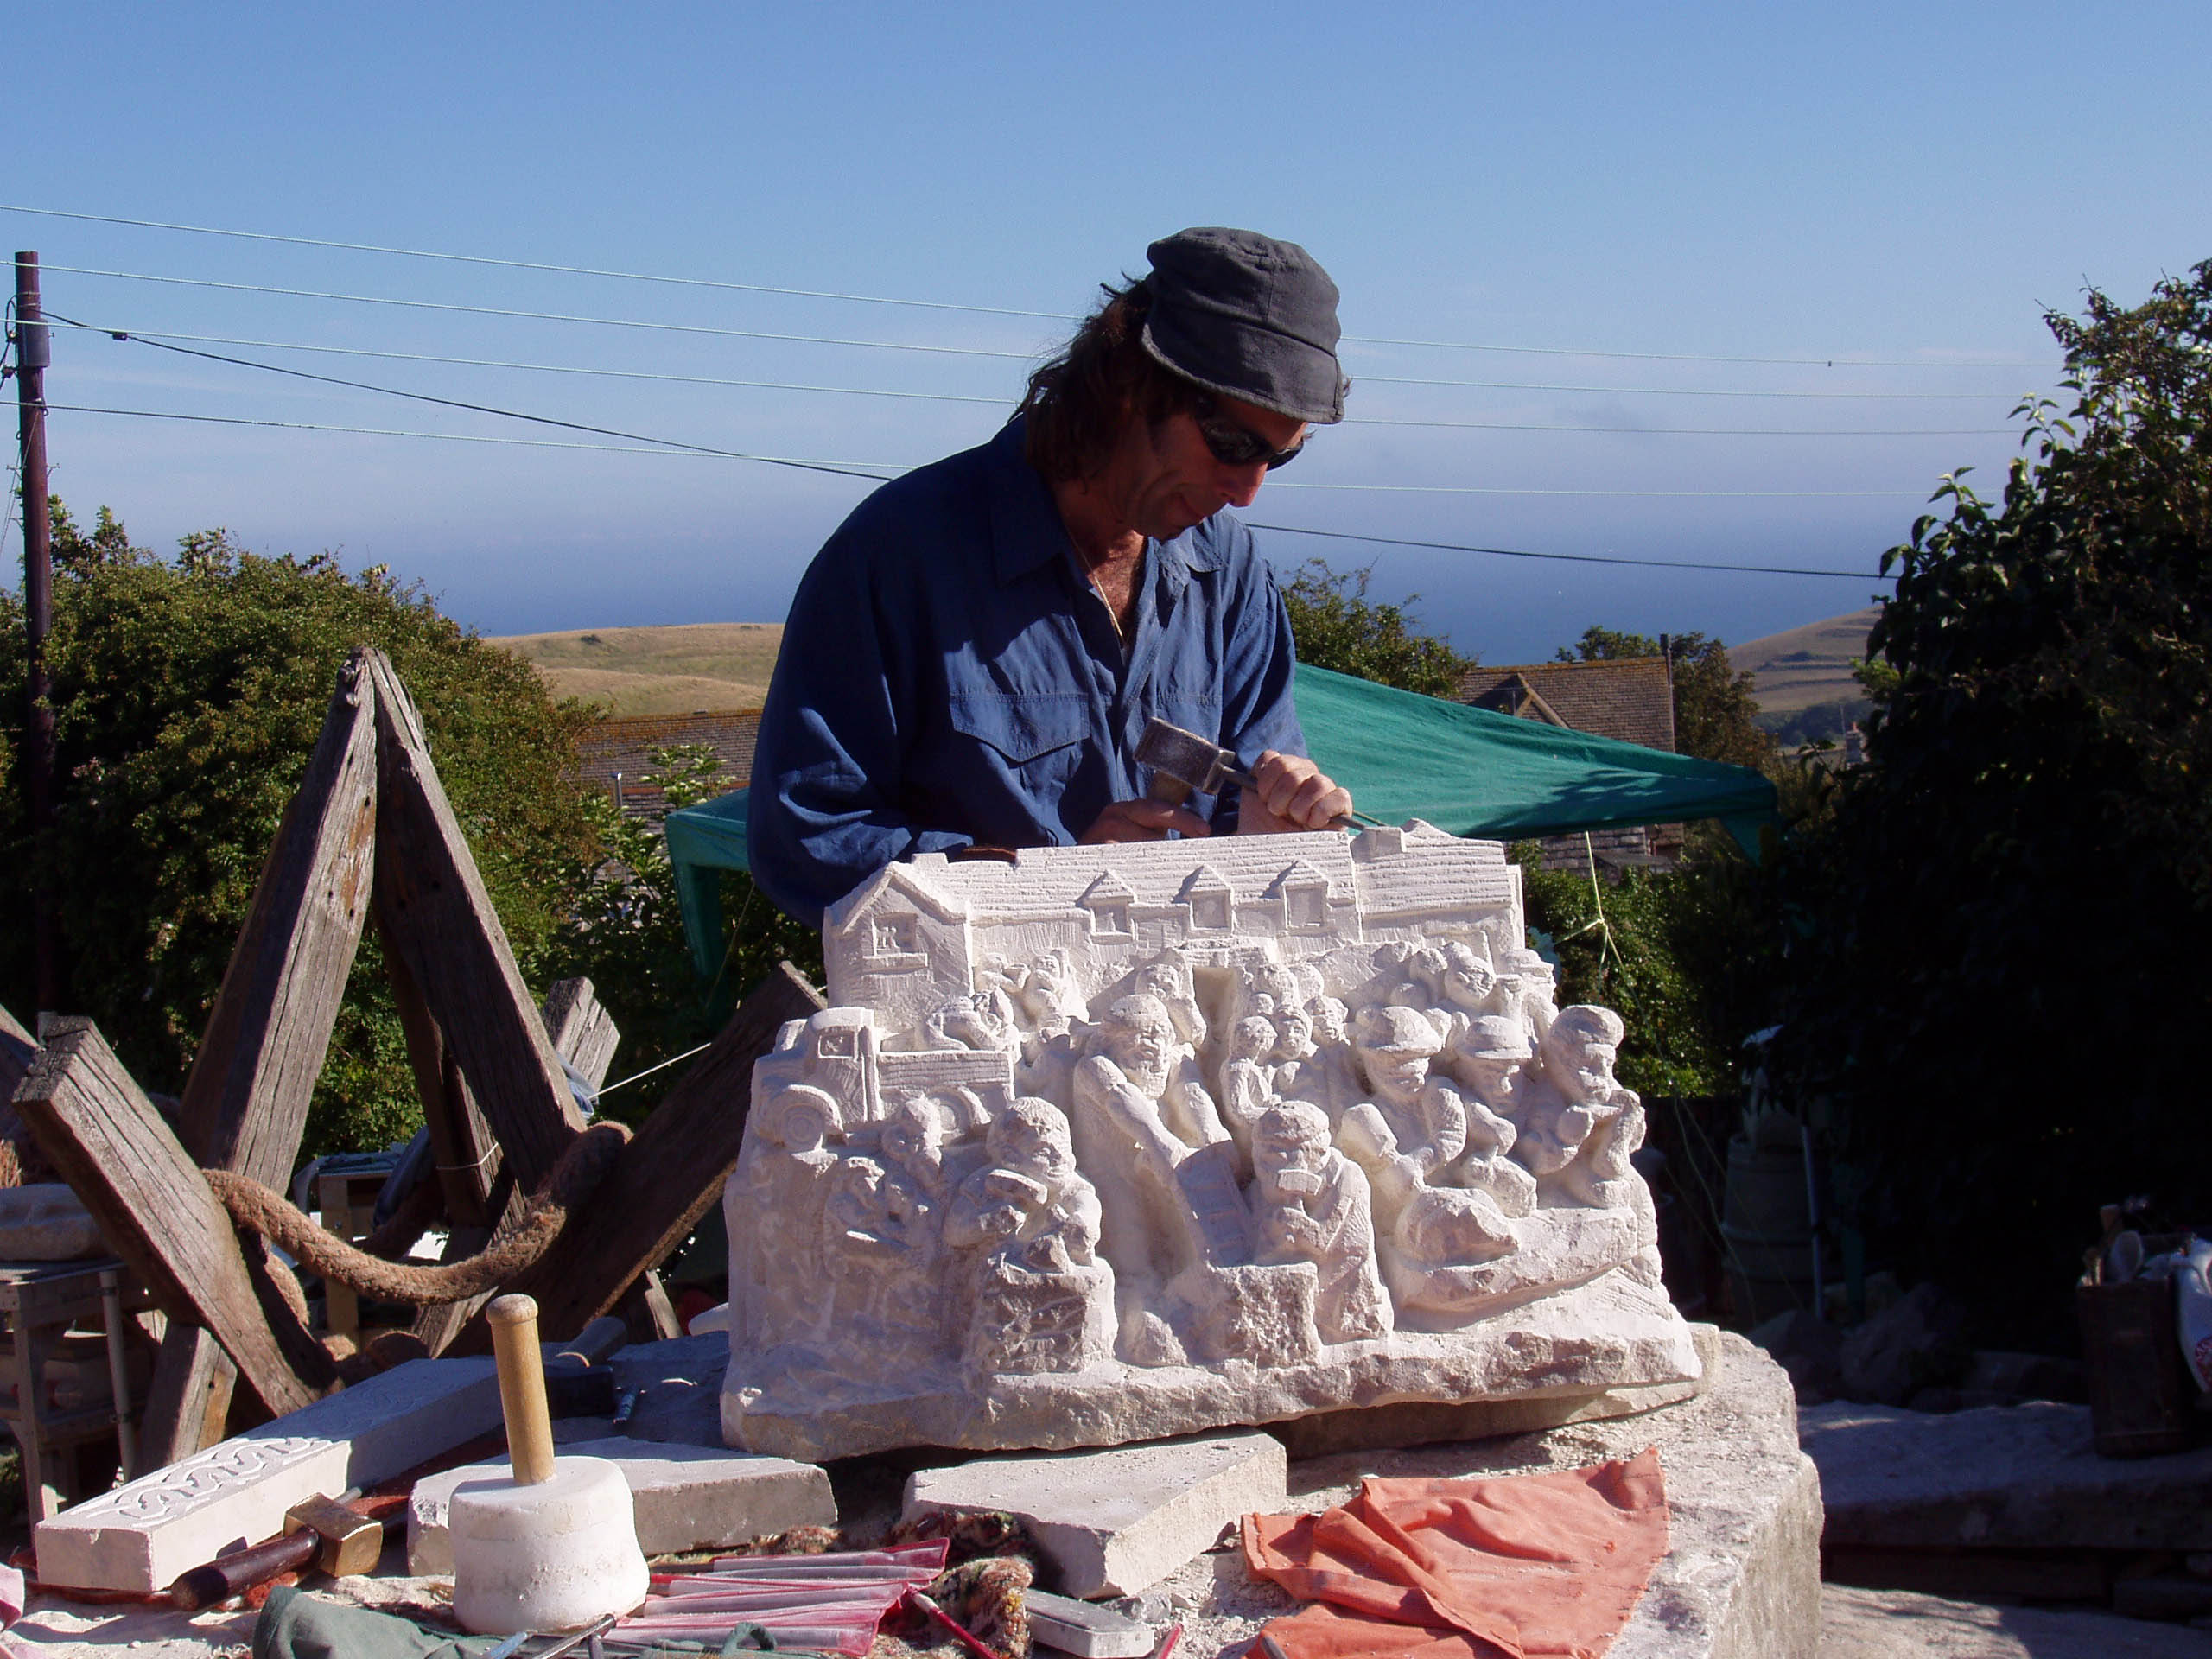 Jonathan Sells - Award winning sculptor and stone carver, Corfe Castle, Dorset.